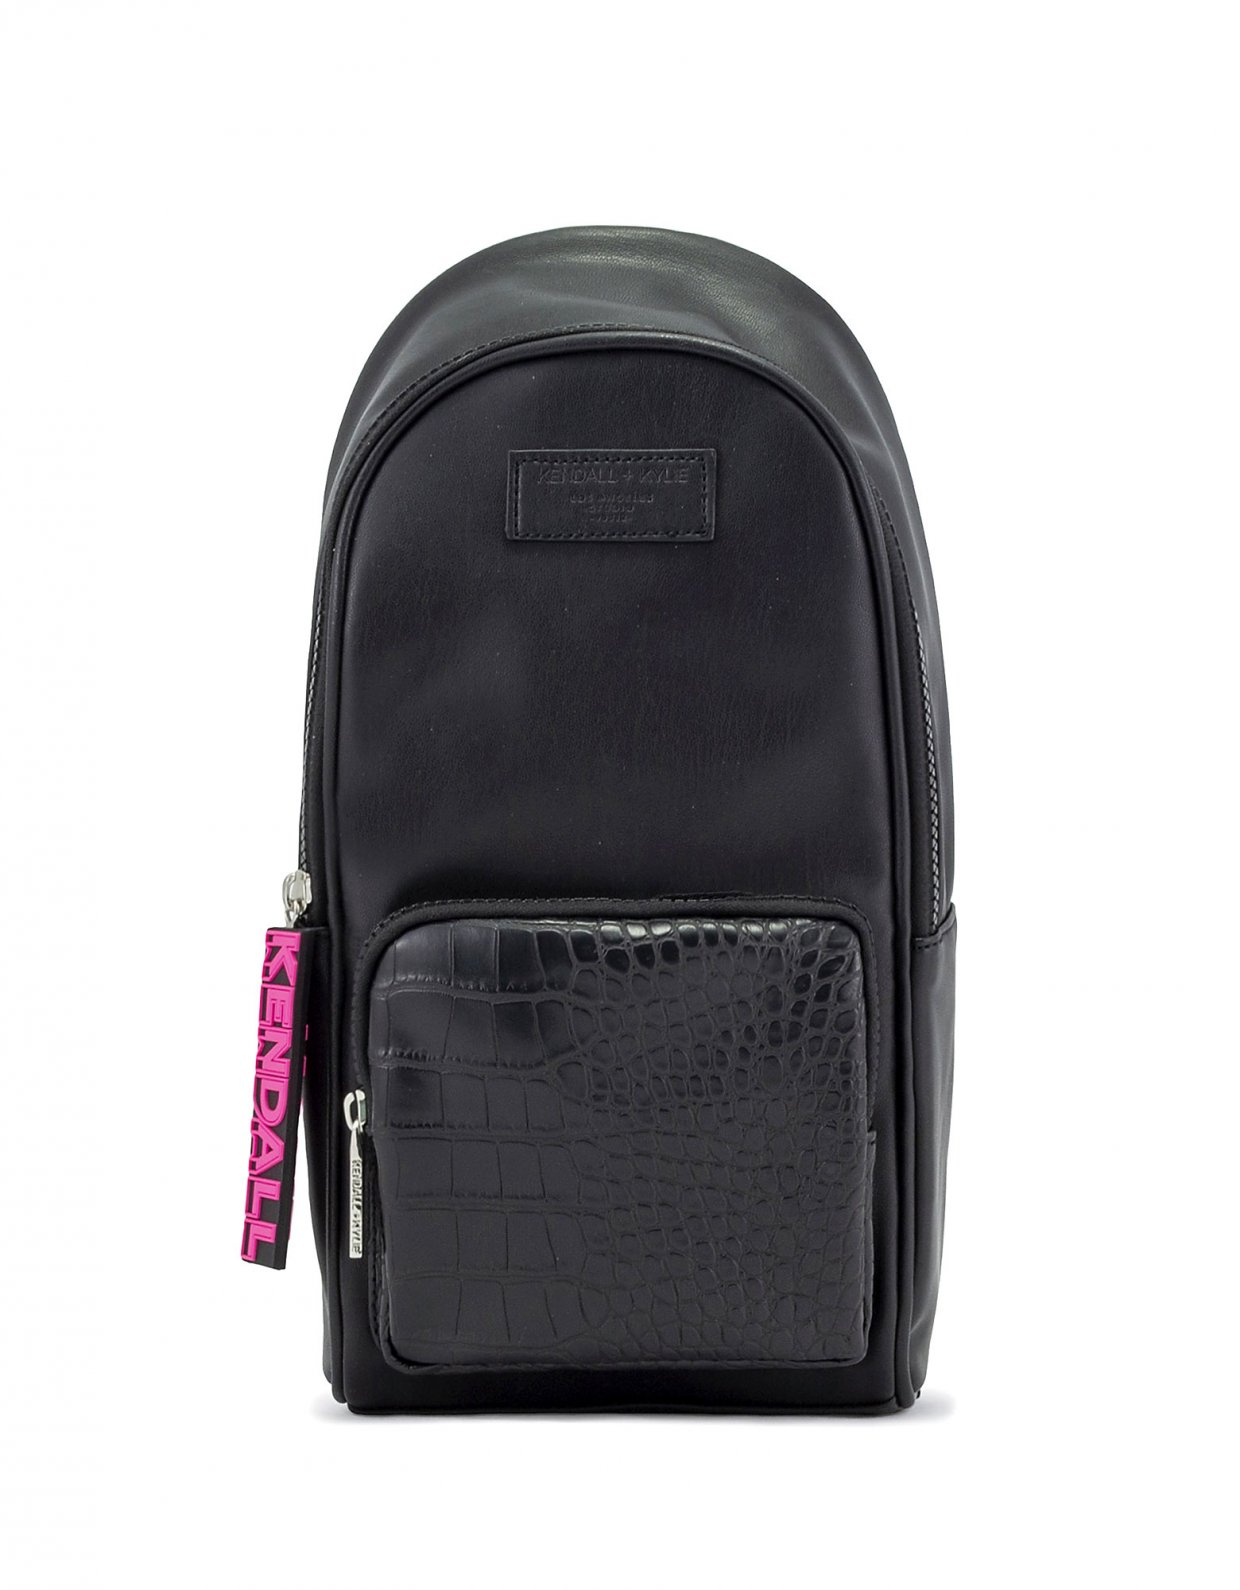 Kendall and Kylie Julia sling backpack